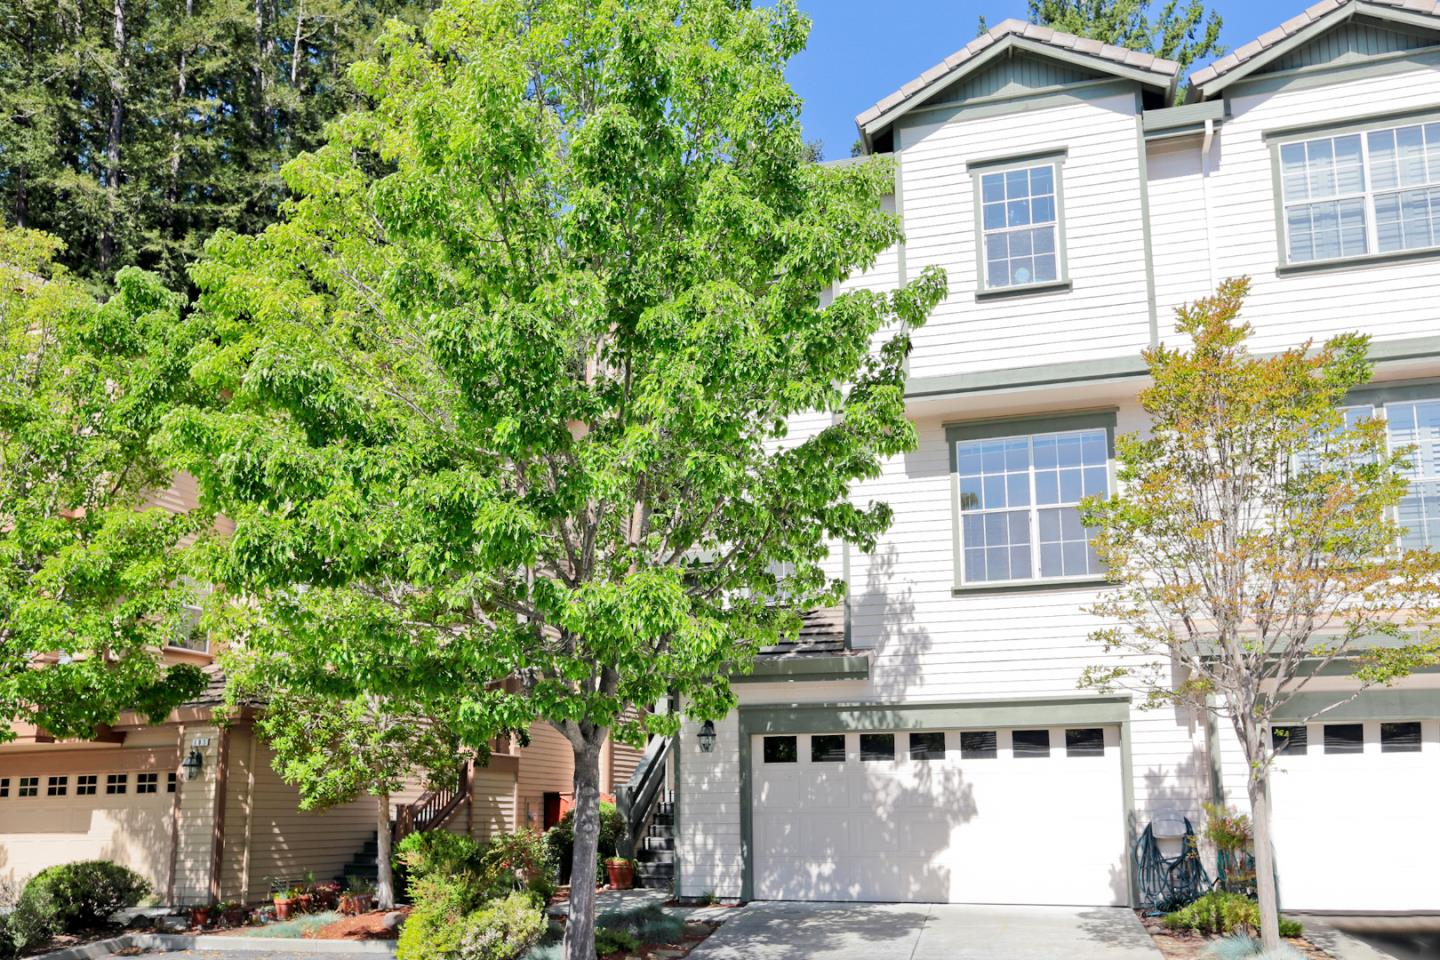 109 Woodhill Dr, Scotts Valley, CA